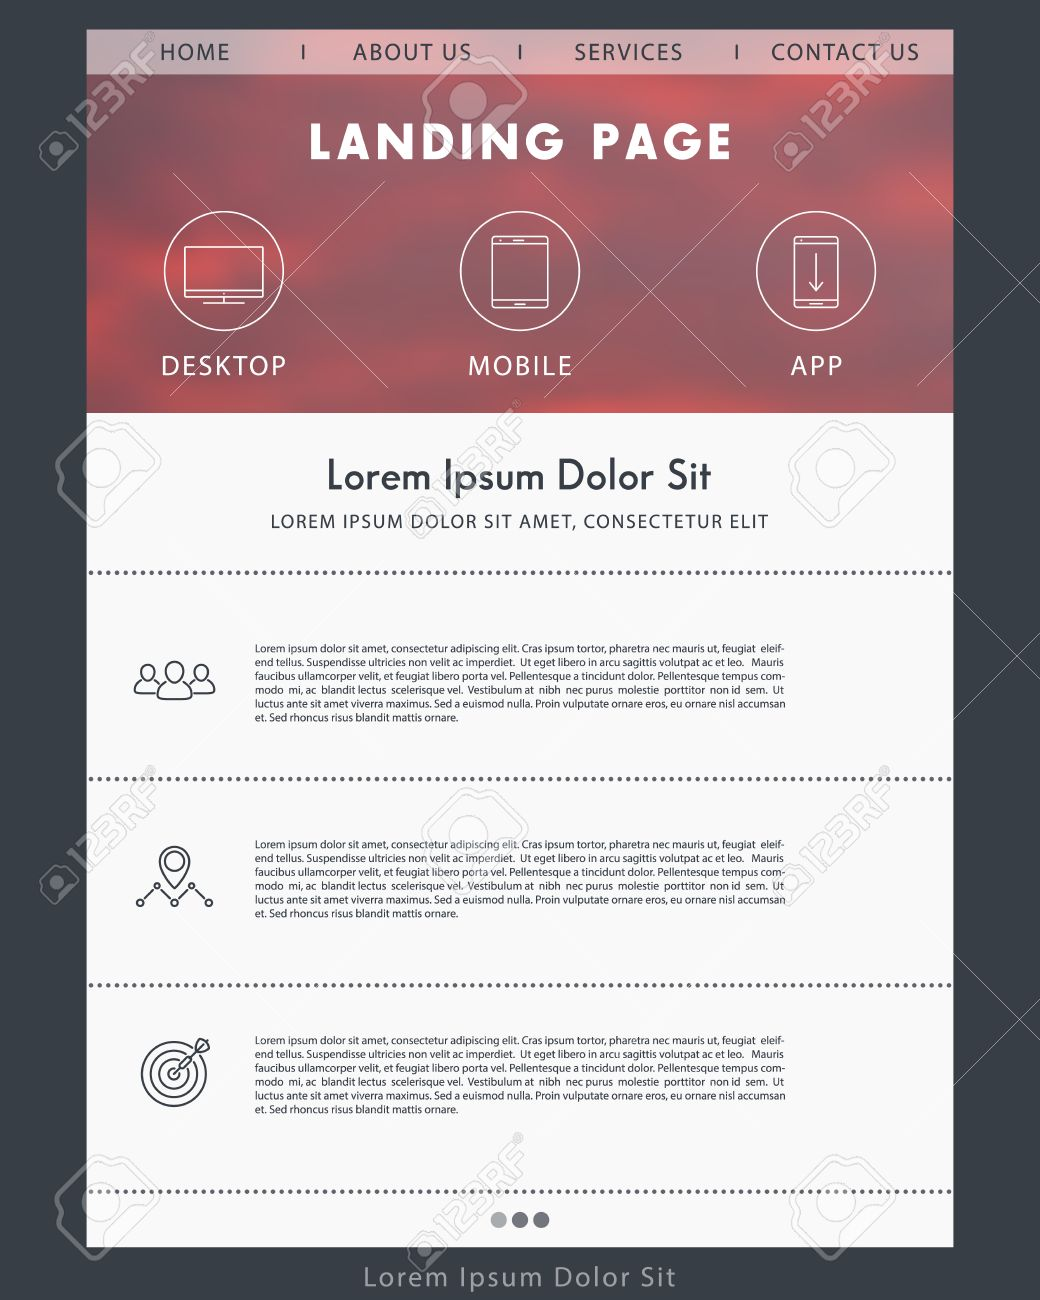 Landing Page Concept, Website Design Template, Web Page Layout ...